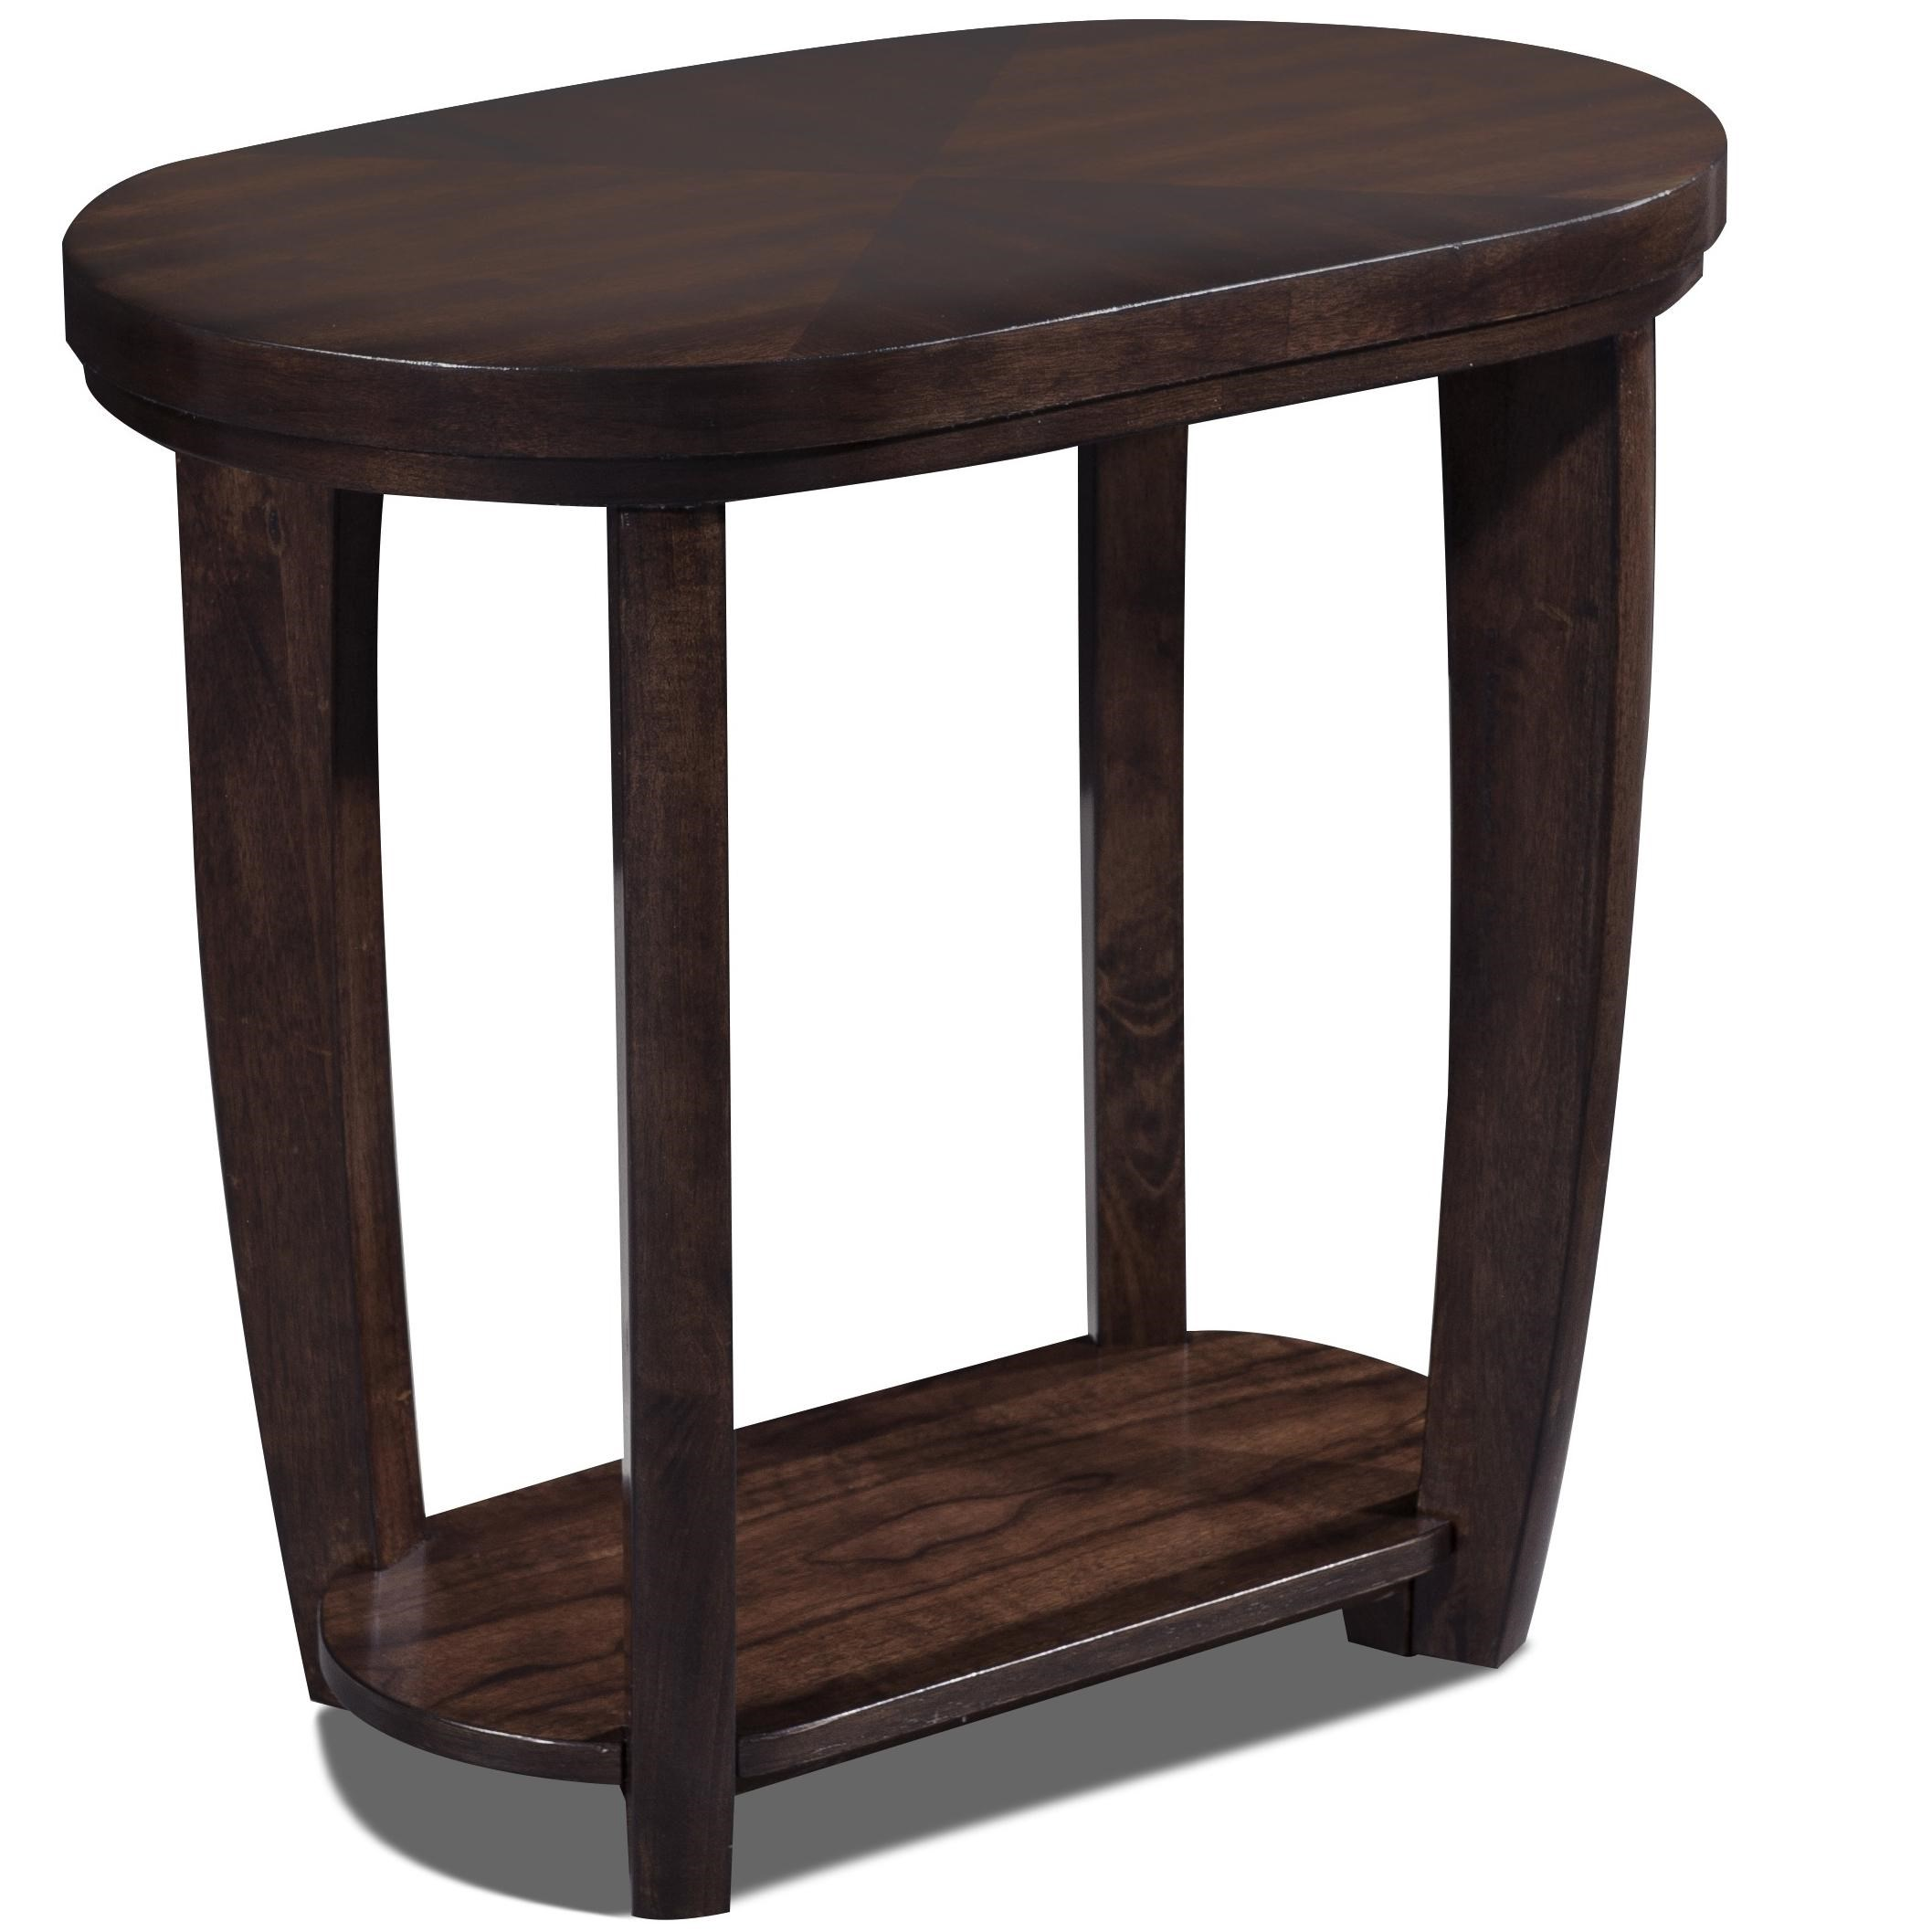 Klaussner International Hayden Oval Chairside Table With 1